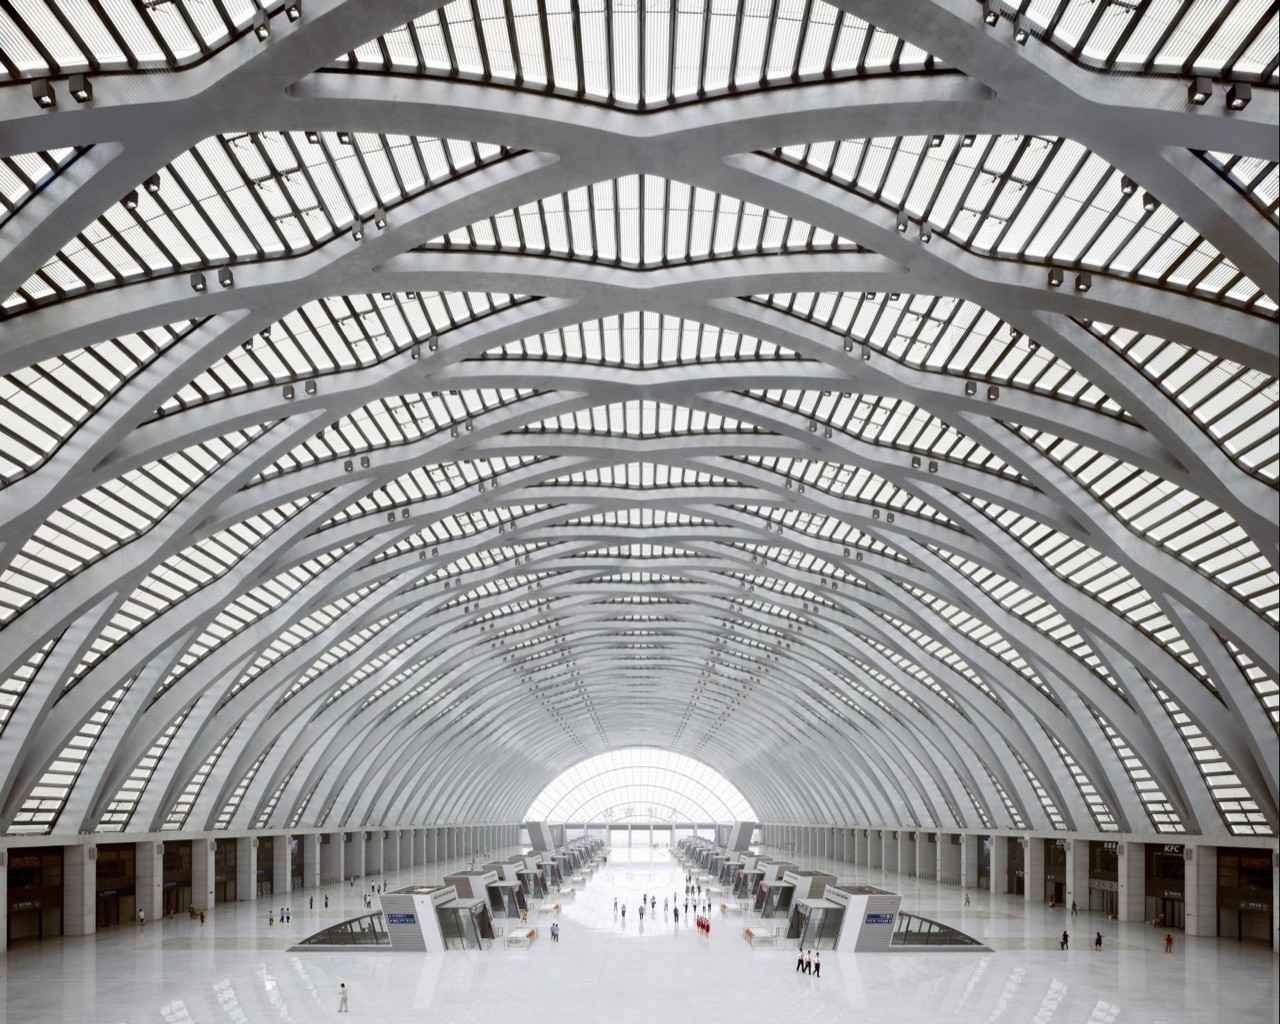 Tianjin West Railway Station / gmp architekten, Courtesy of  gmp architekten